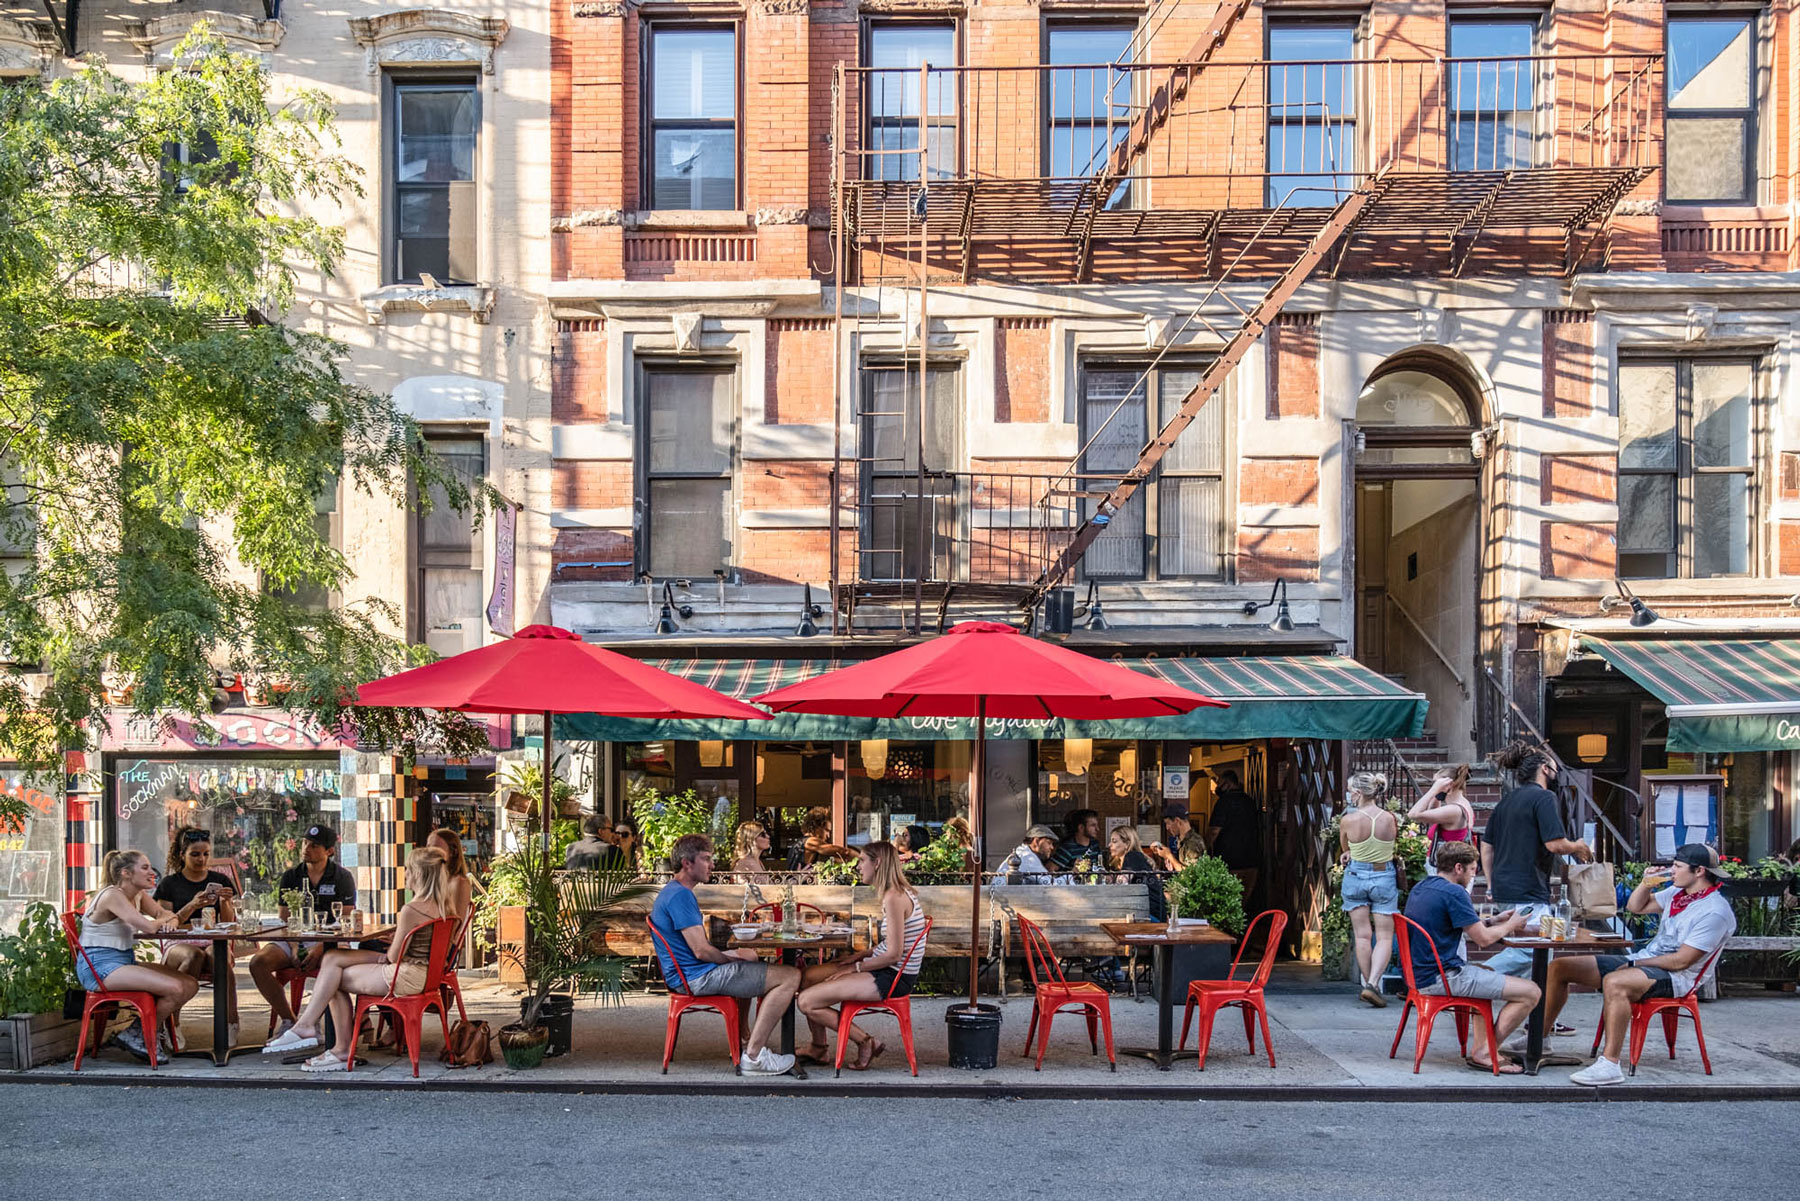 outdoor diners at a restuarant in new york city